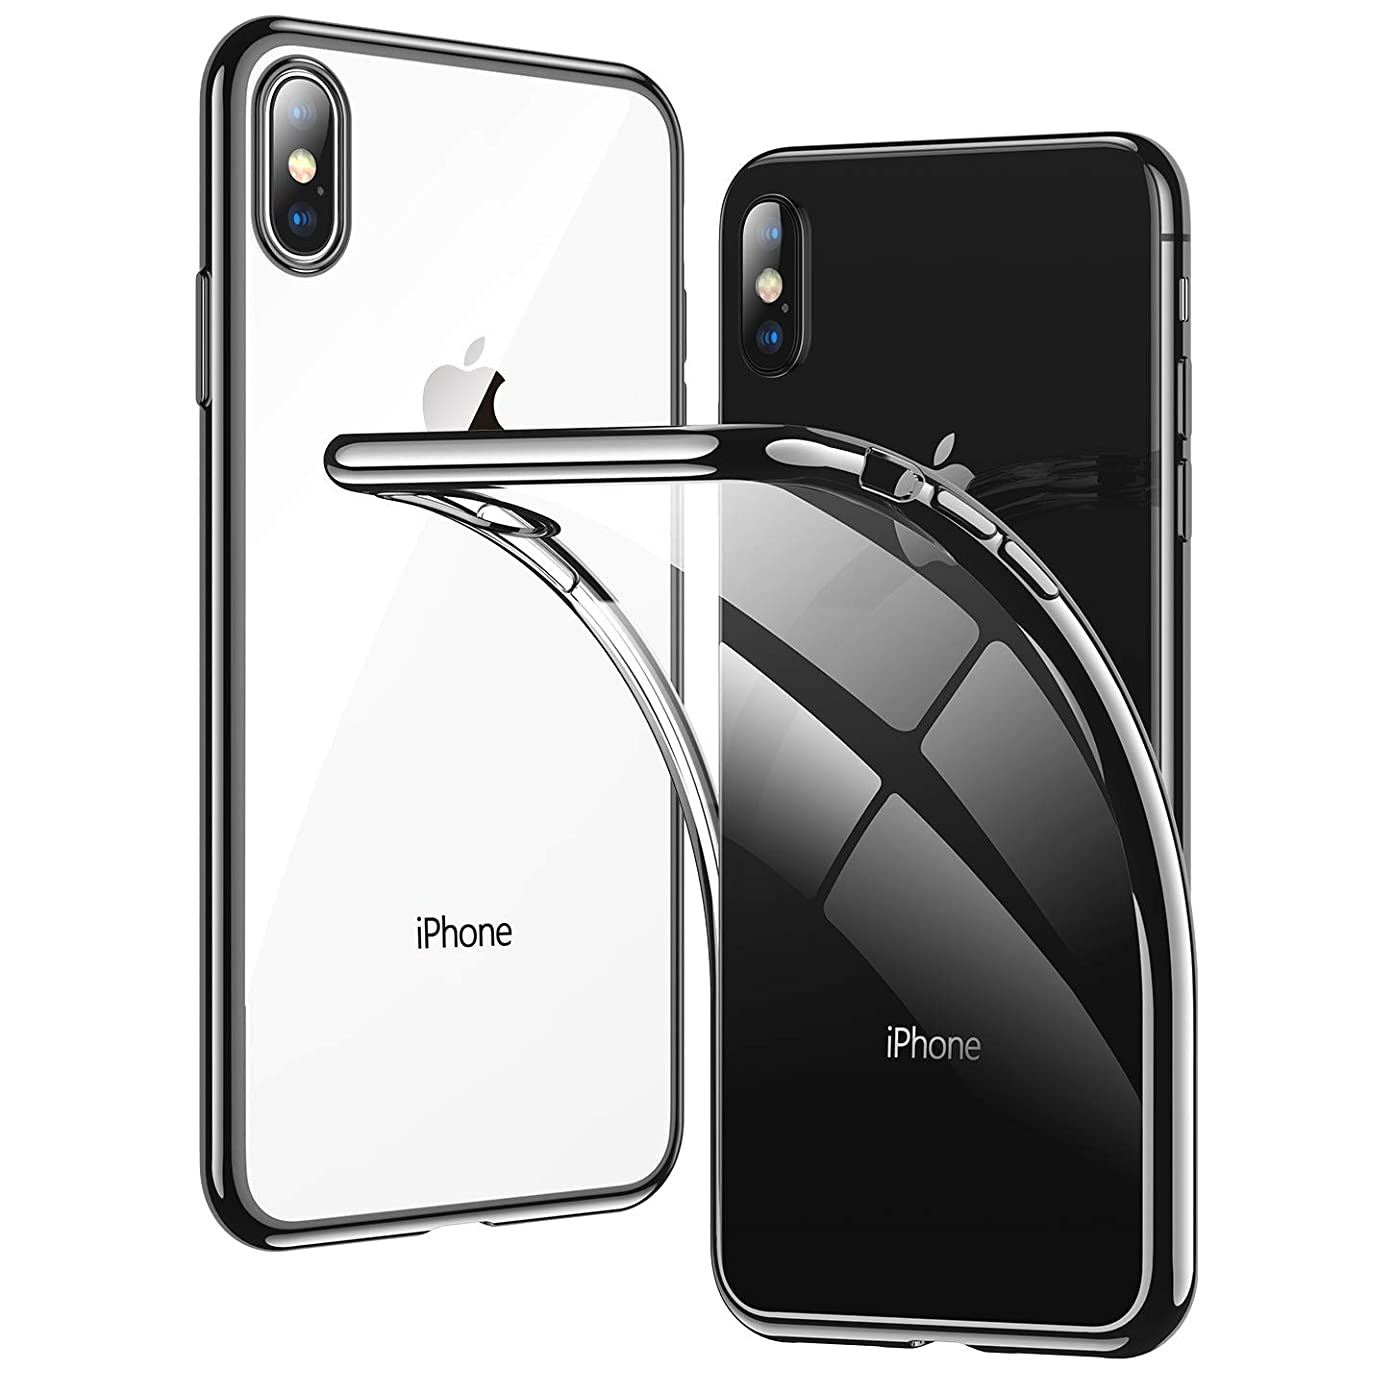 Clear iPhone Xs Max Case, RANVOO Thin Slim Fit Soft Silicone Cover with Jet Black Electroplated Bumper Case for Apple iPhone Xs Max 6.5